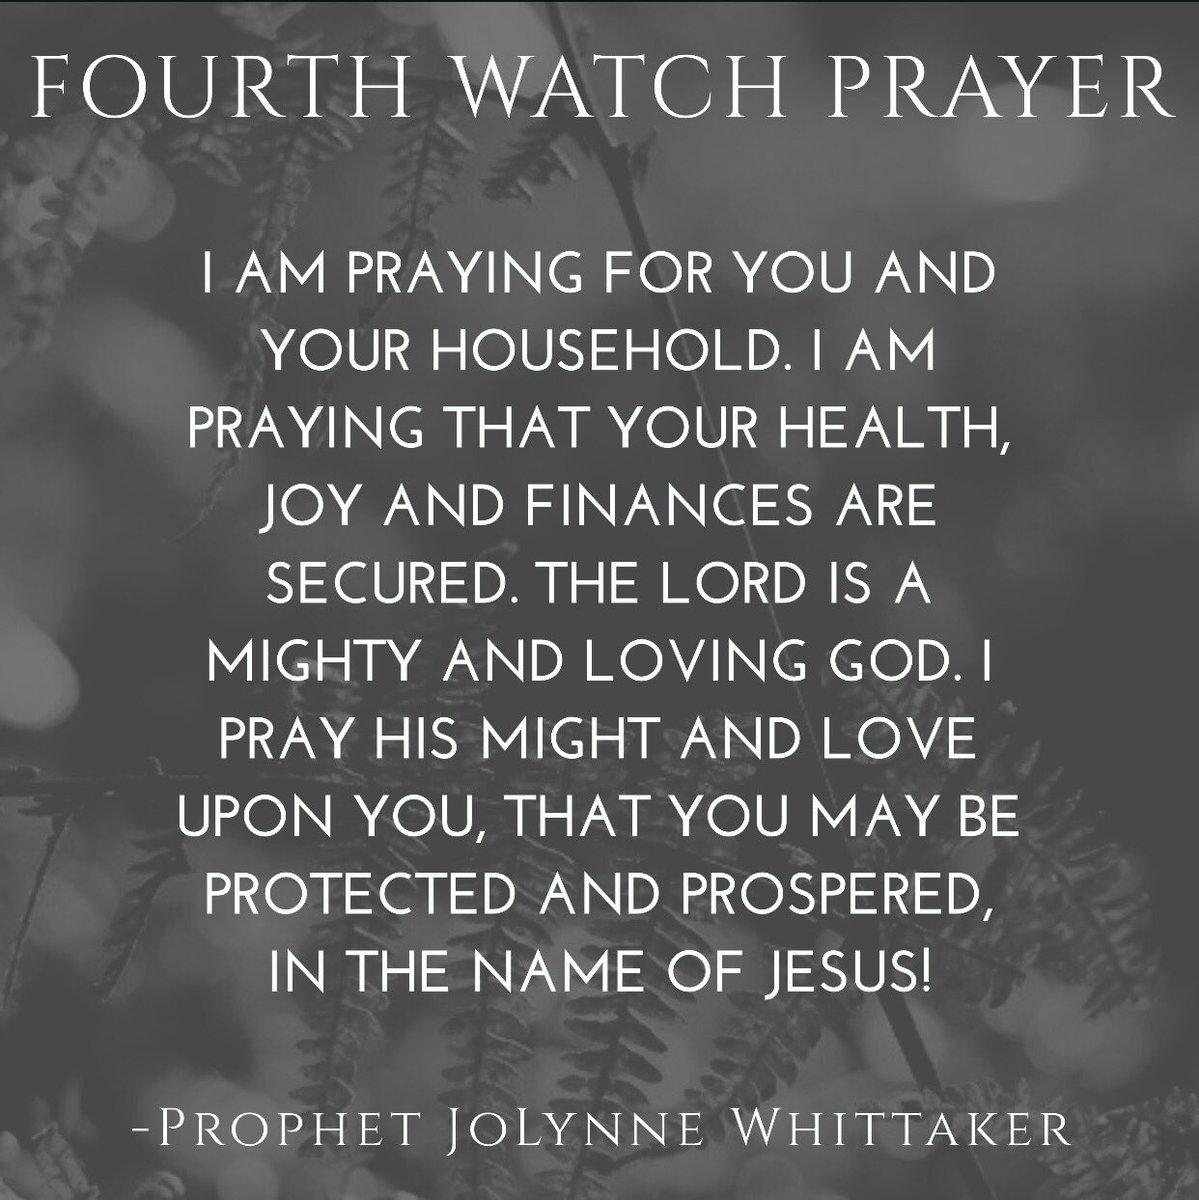 Jolynne Whittaker On Twitter  F0 9f 94 A54th Watch Prayer F0 9f 99 8f F0 9f 8f Bd F0 9f 94 A5i Am Up Praying For You Your Household I Pray Your Health Joy Protection And Finances Are